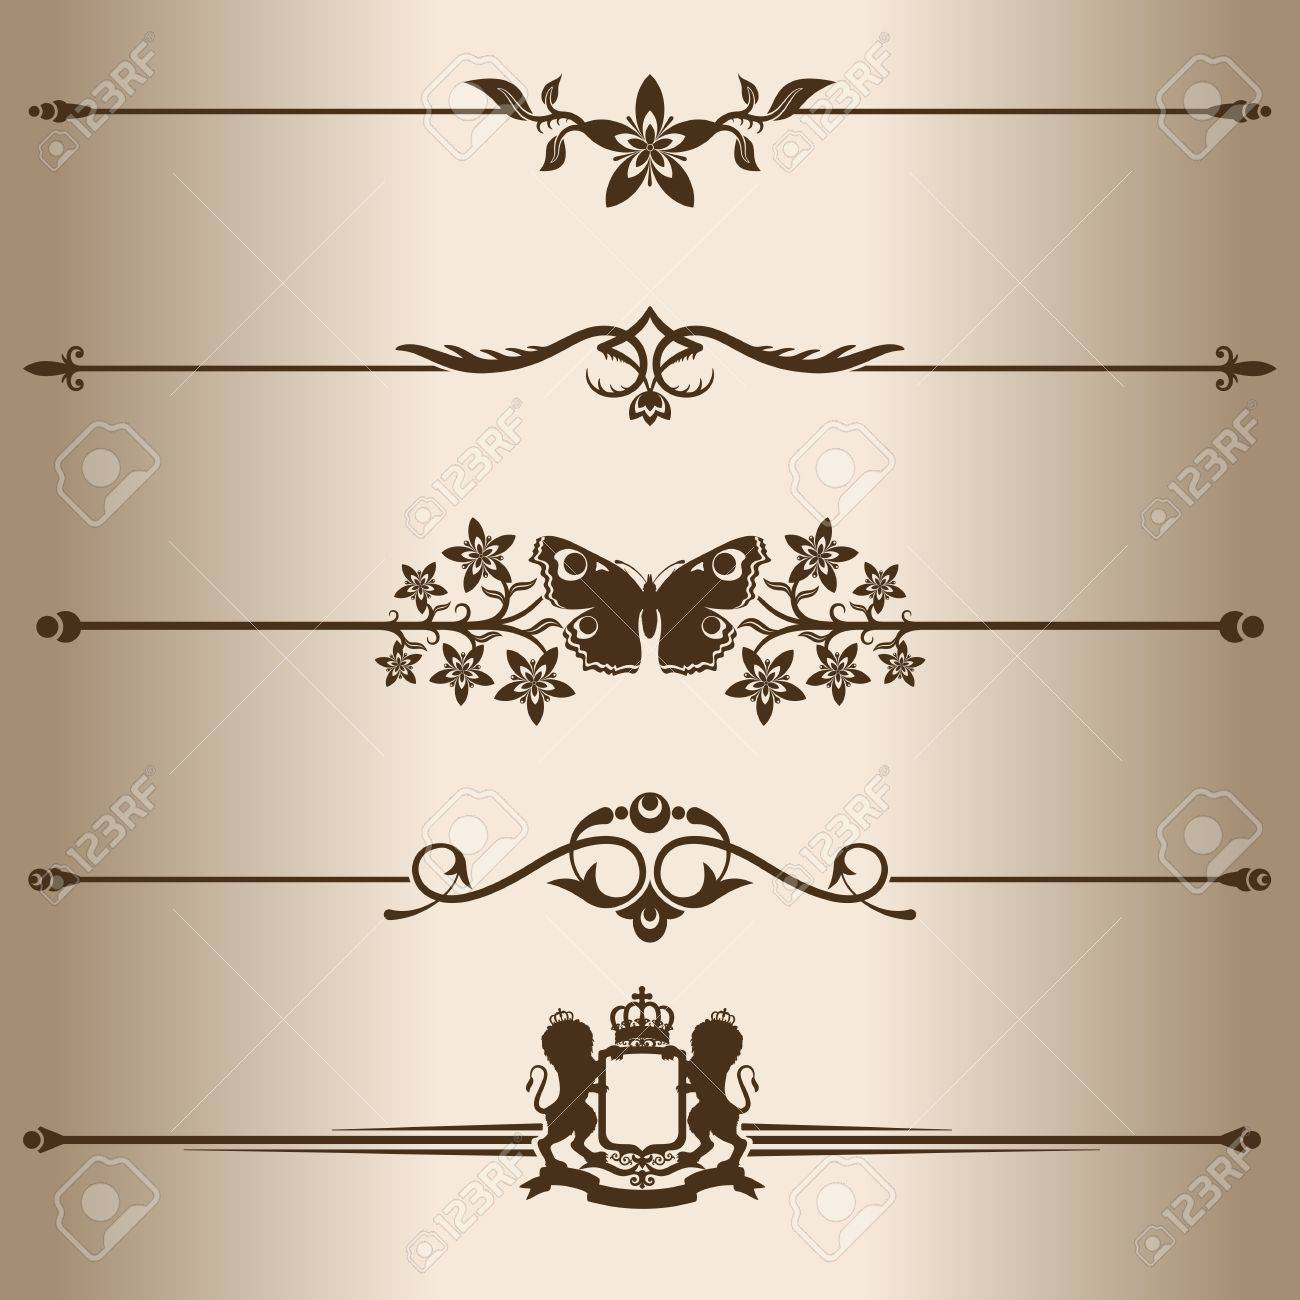 Decorative lines  Elements for design - decorative line dividers  Vector illustration Stock Vector - 16510551